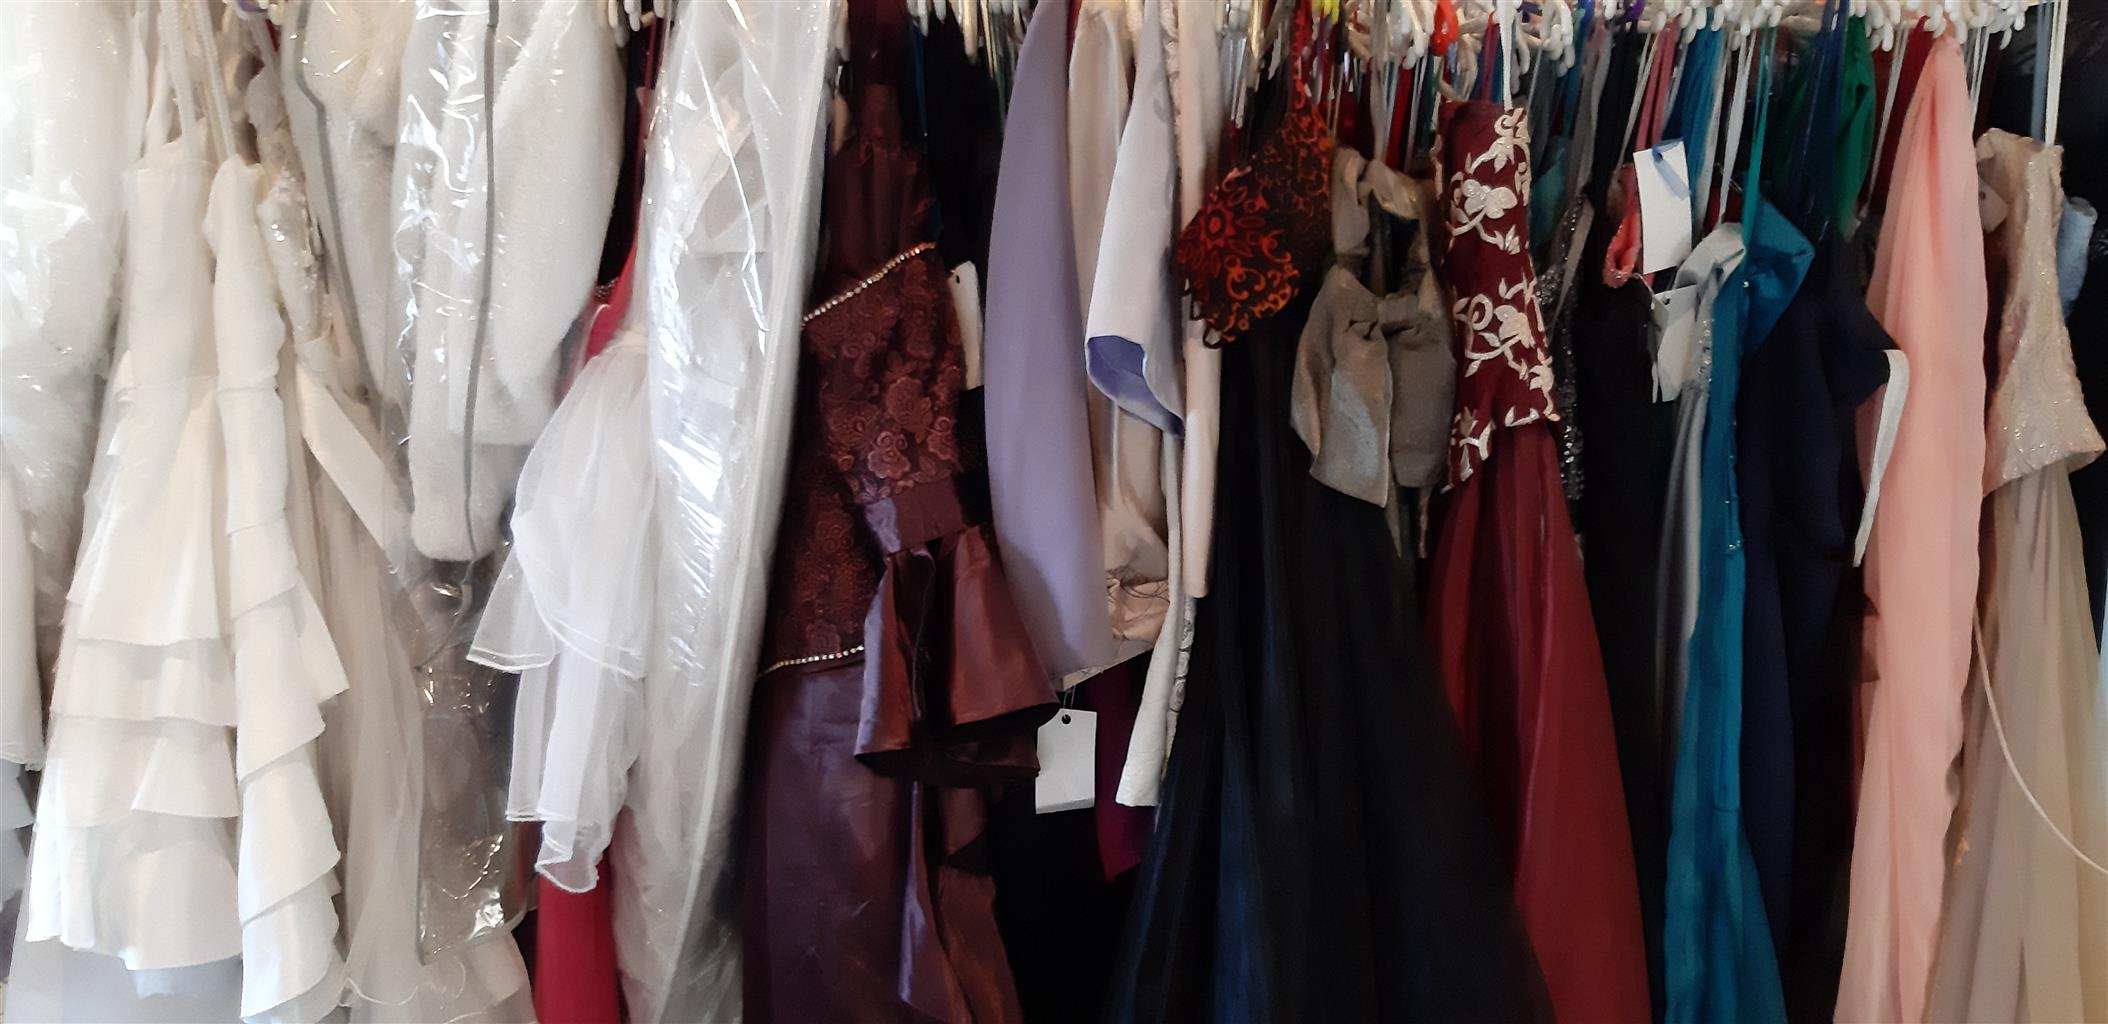 Matric Farewell/Formal Evening Dresses (ABSOLUTE MADNESS) !!!